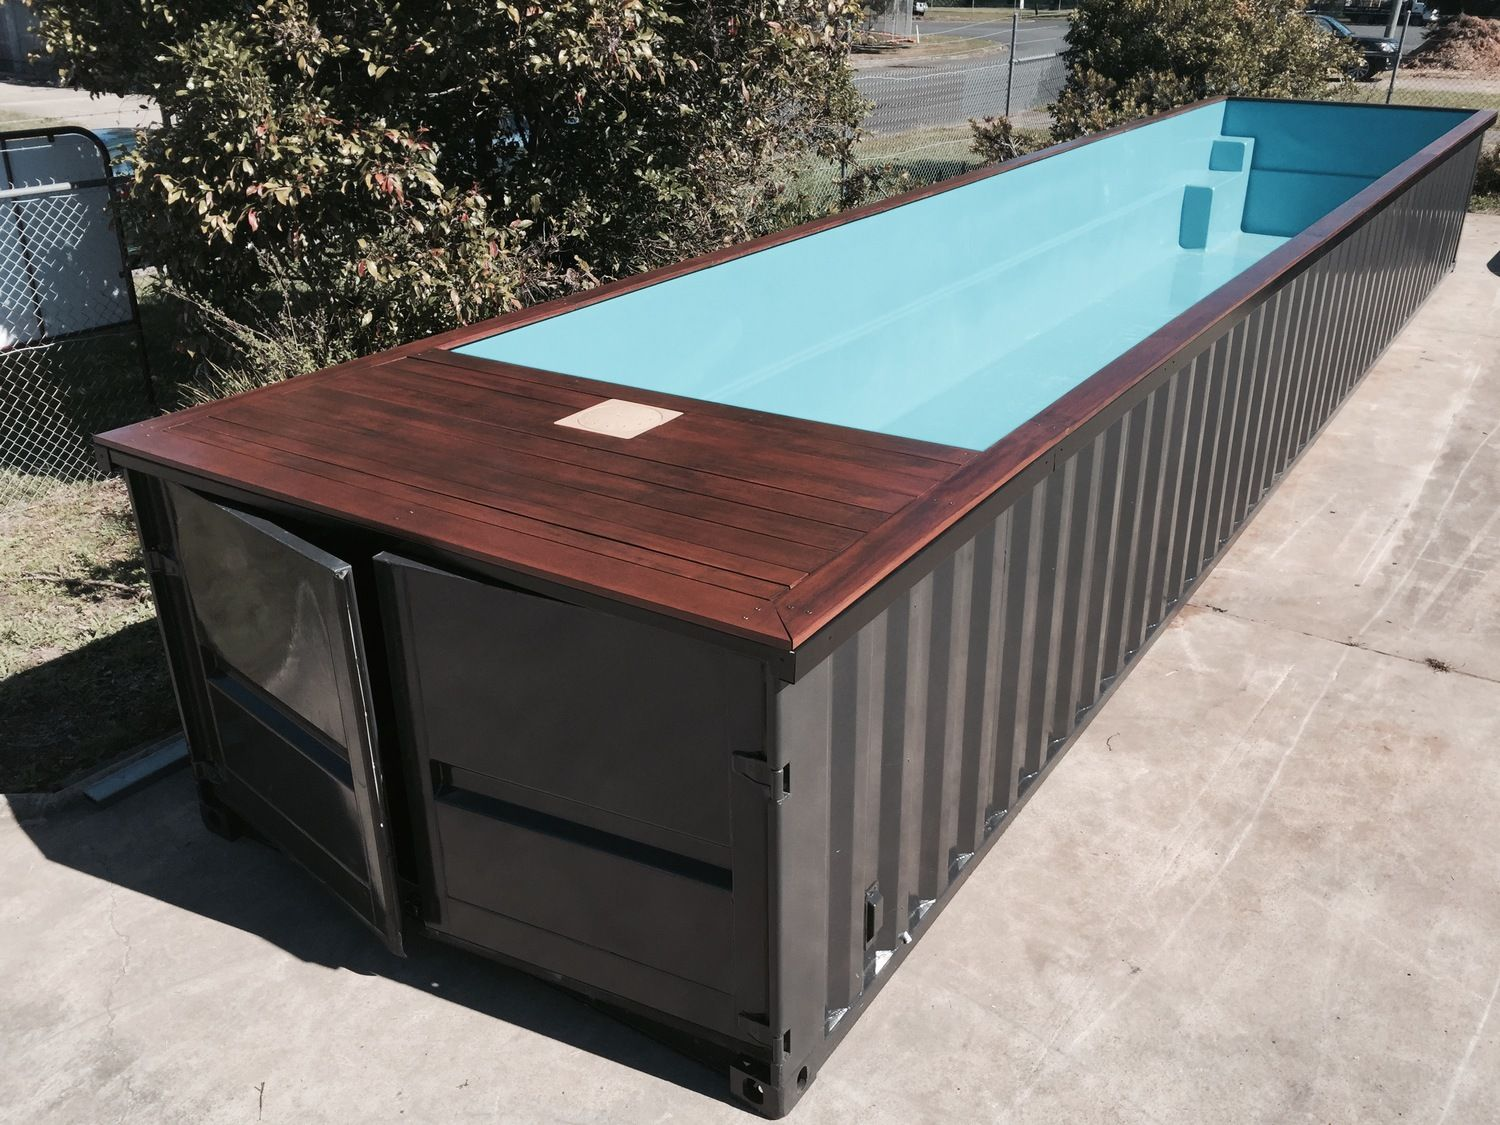 une piscine hors sol en container pour pas payer d 39 impots. Black Bedroom Furniture Sets. Home Design Ideas